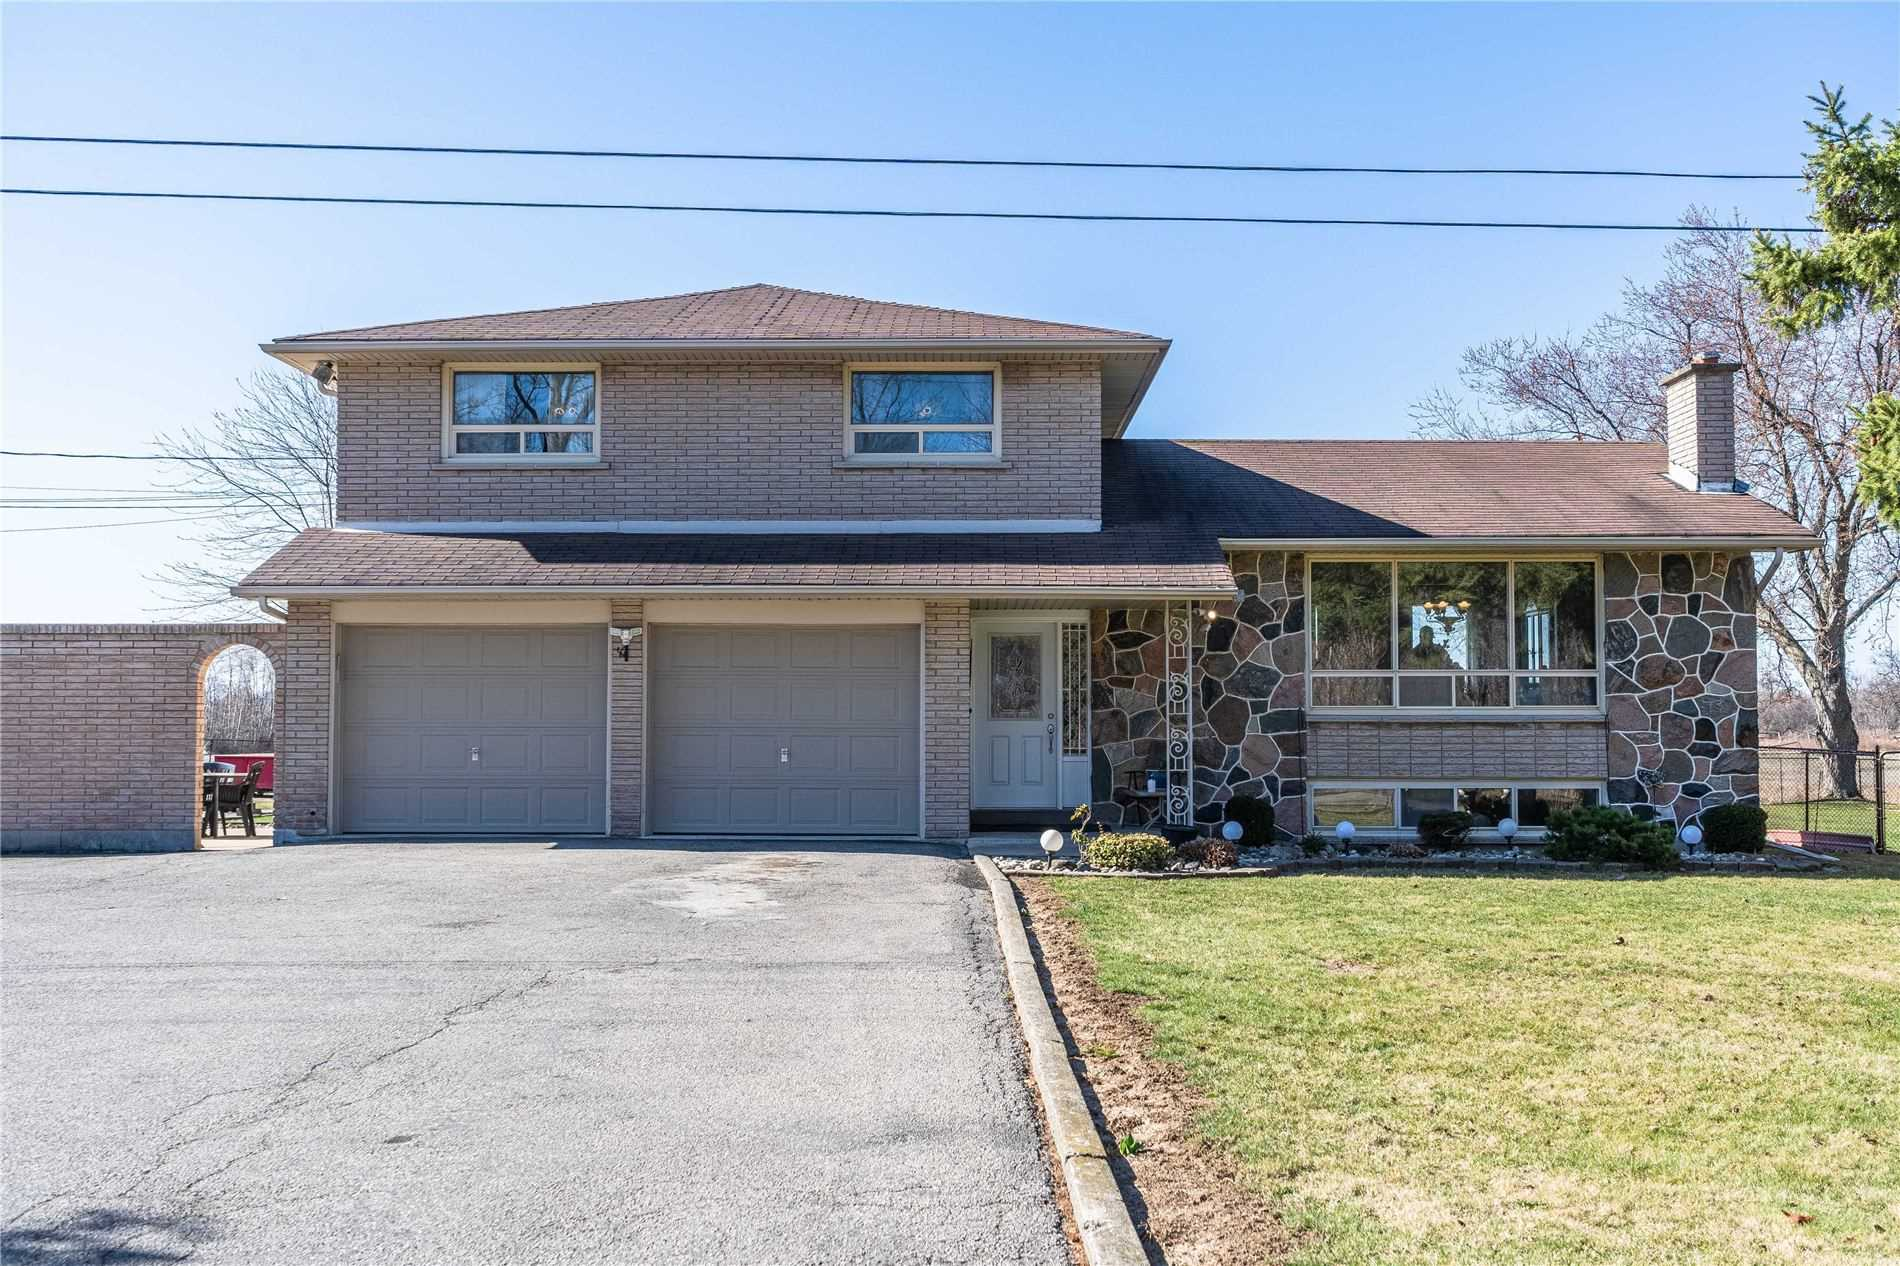 This 3 Bdrm, 2 Bthrm Side Split W/Detached Garage & Oversized Shop Is Well-Loved & Cared For. Step Into The Beautifully Tiled Front Door, Down To A Large Pantry & Enlarged Family Rm W/Gas Fireplace. Up The Steps, You Are Greeted With A Large Front Window In The Living Room Featuring A Wood Fireplace. The Dining Room & Custom Kitchen Is A Great Place For The Family To Gather In The House. Upstairs There Are 2 Lrg Bdrms Both W/Closets & Lrg Primary W/Walk In.